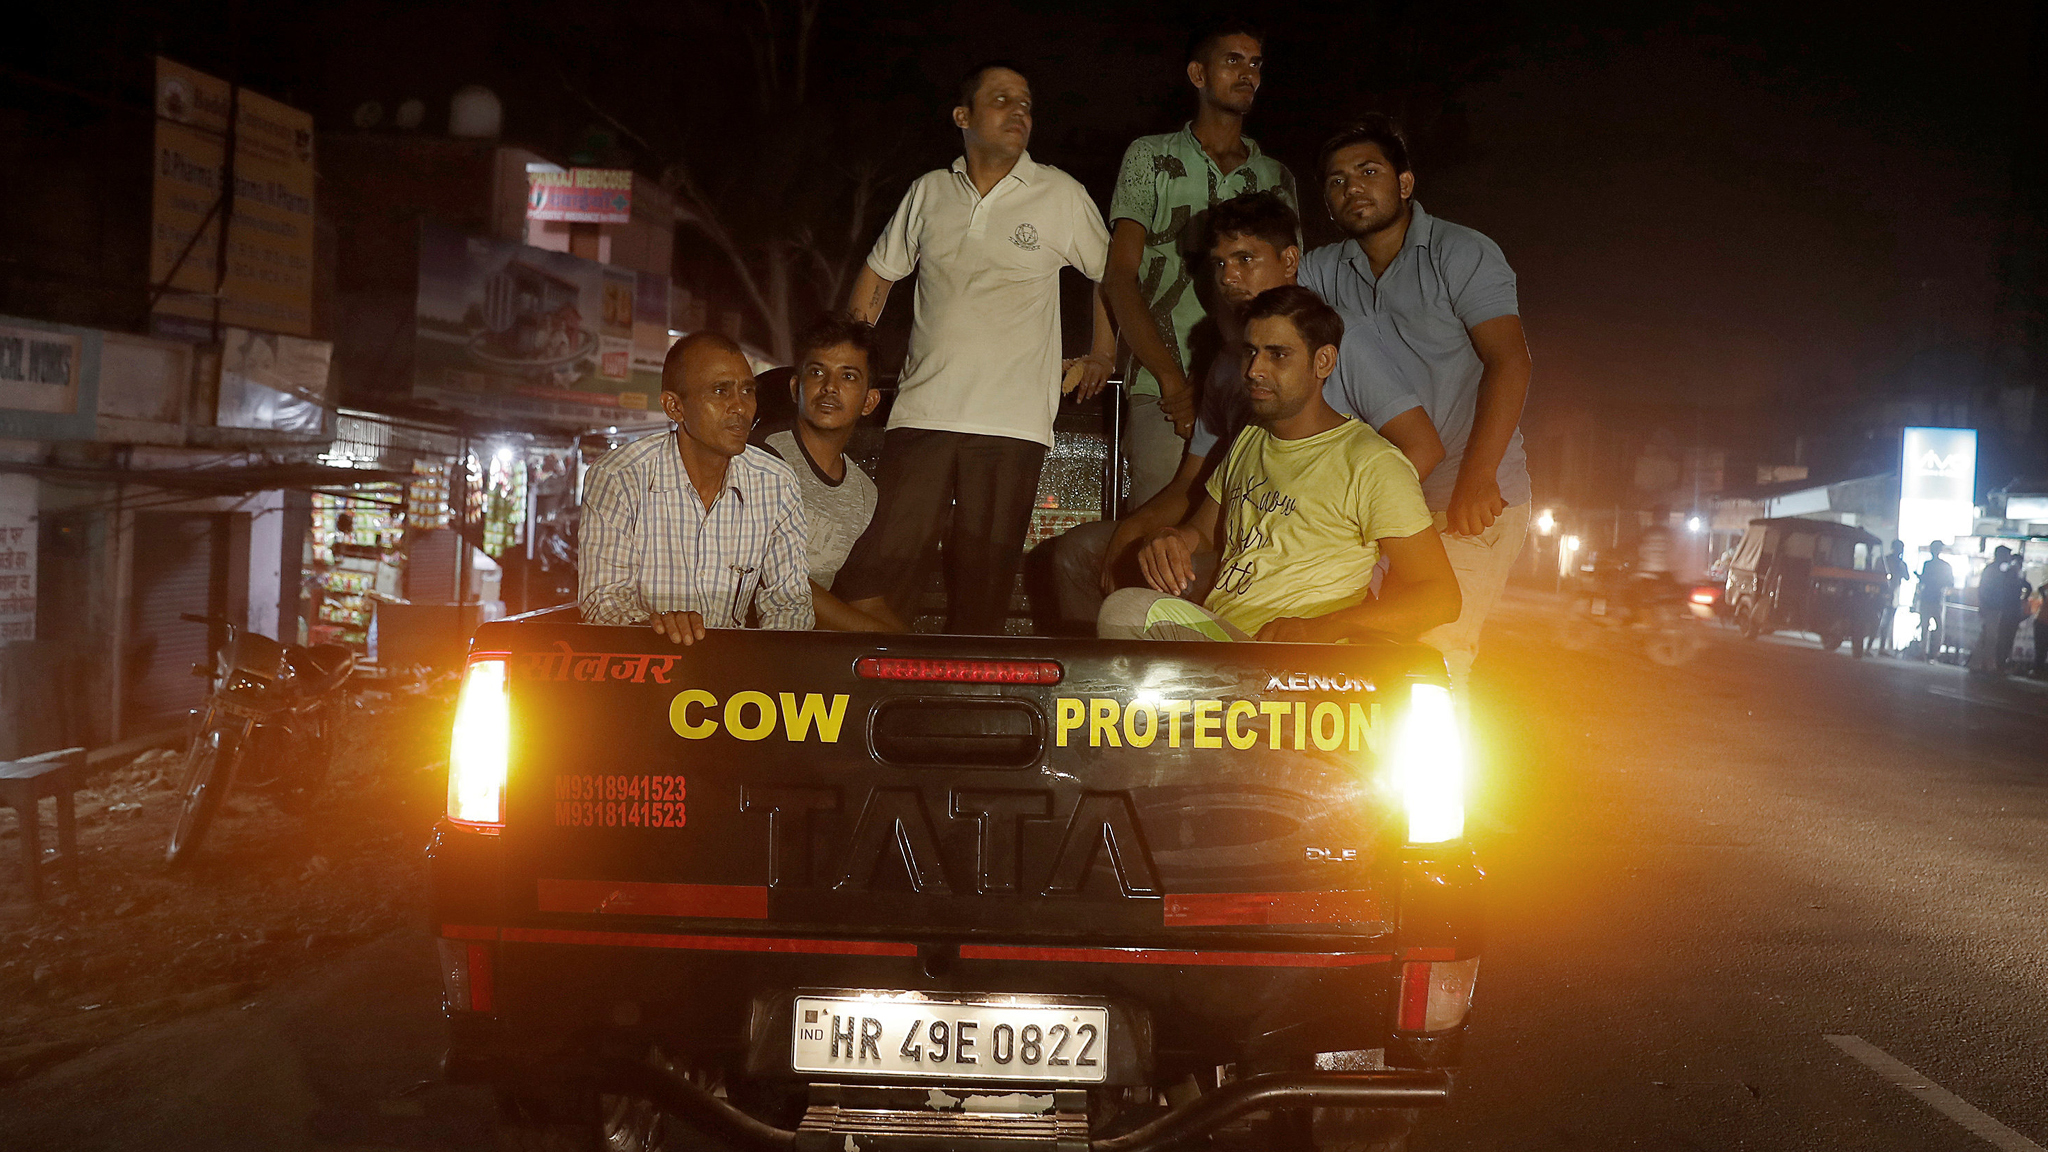 Modi's India: the high cost of protecting holy cows